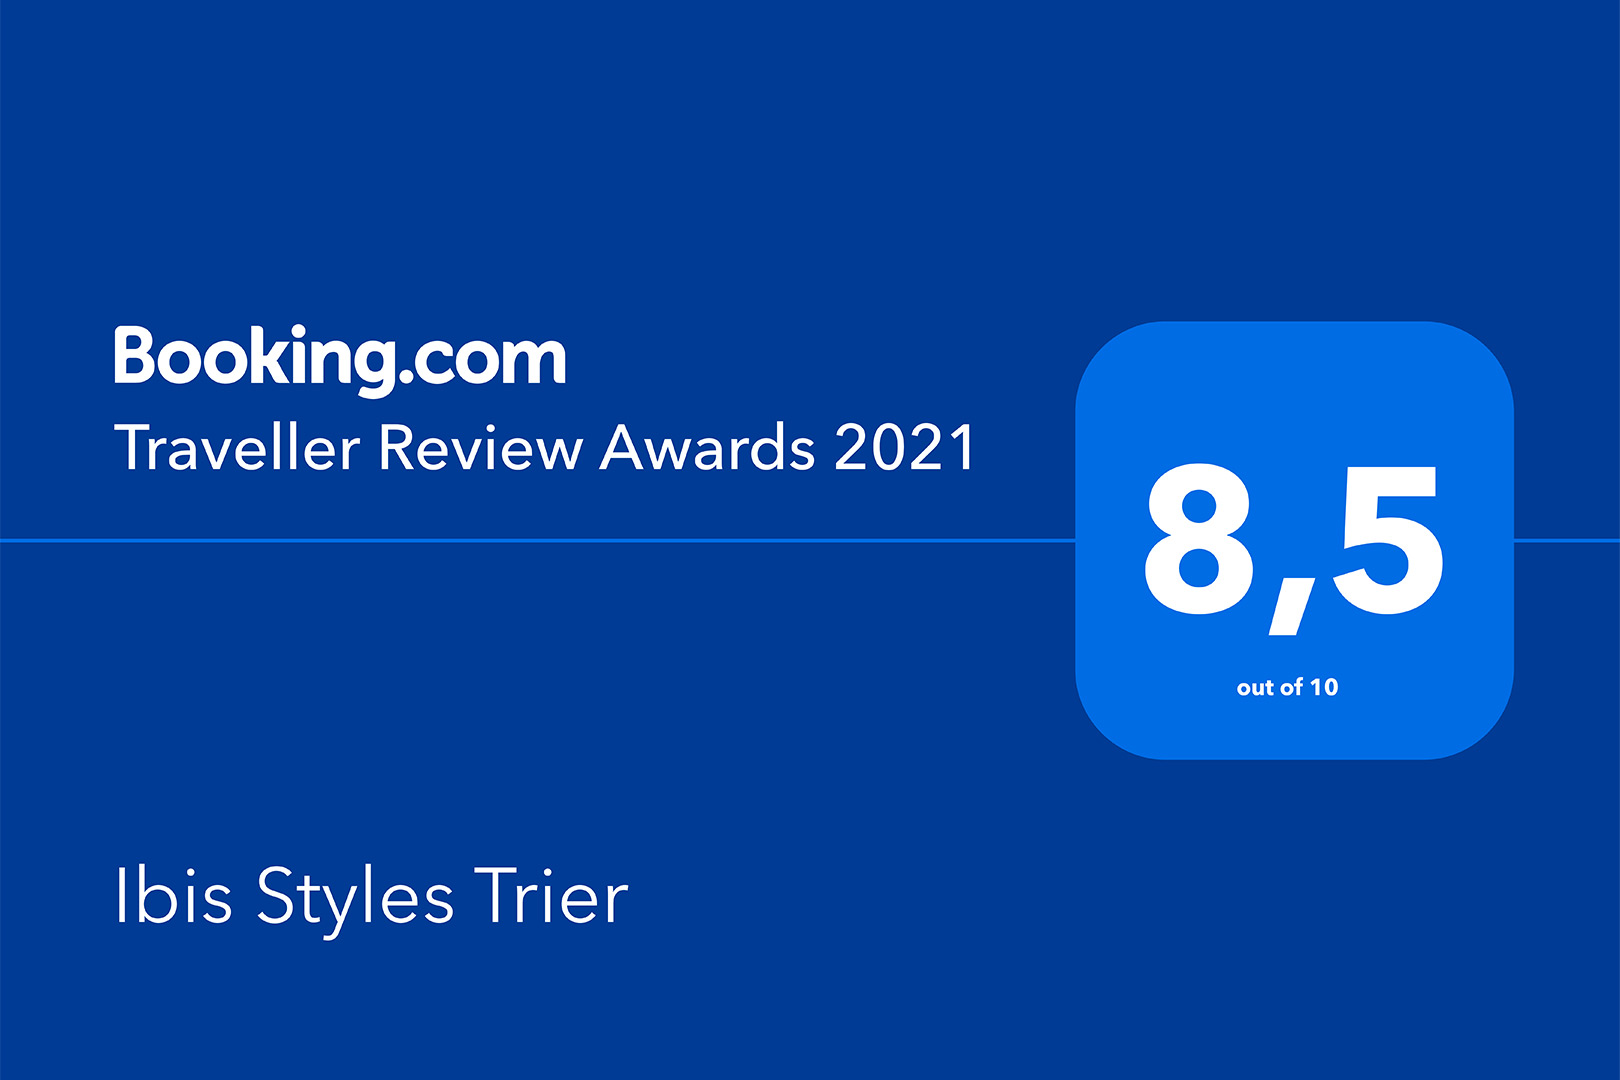 ibis Styles Trier - Traveller Review Award 2021